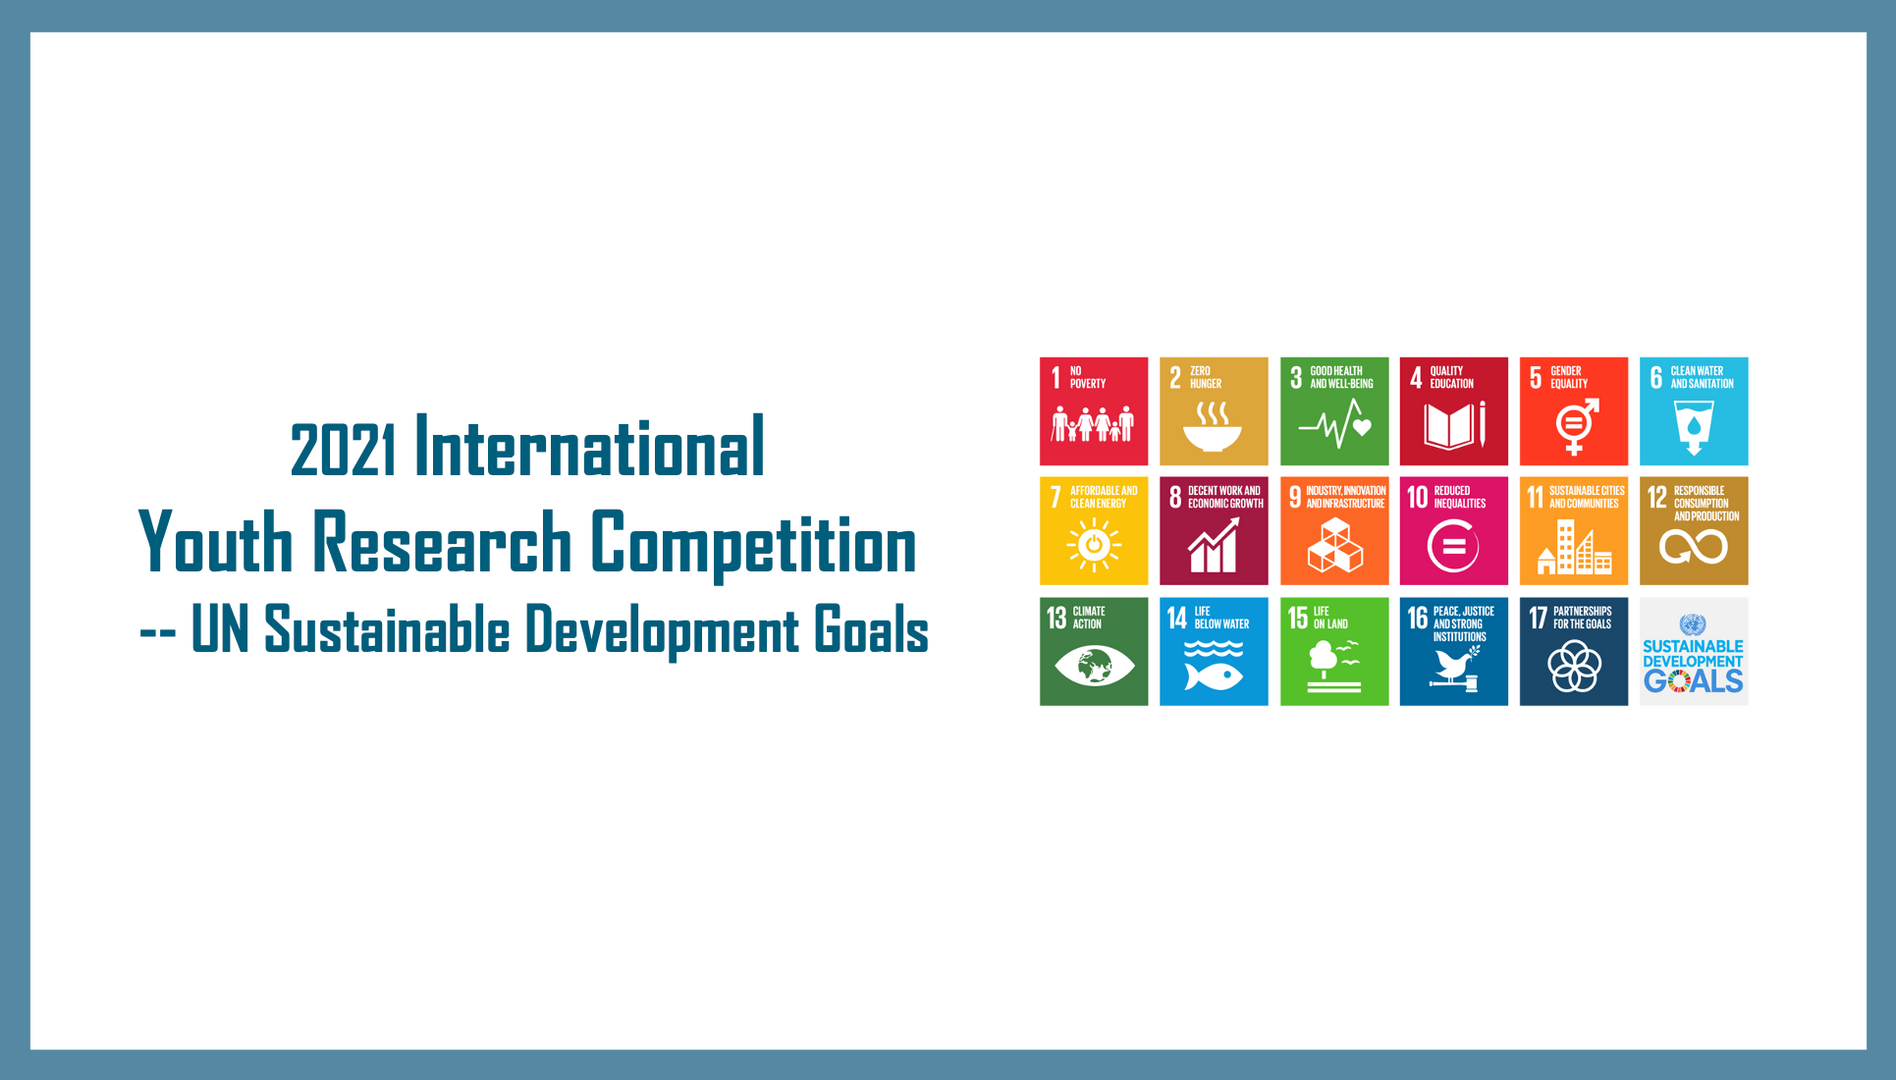 2021 International Youth Research Compet